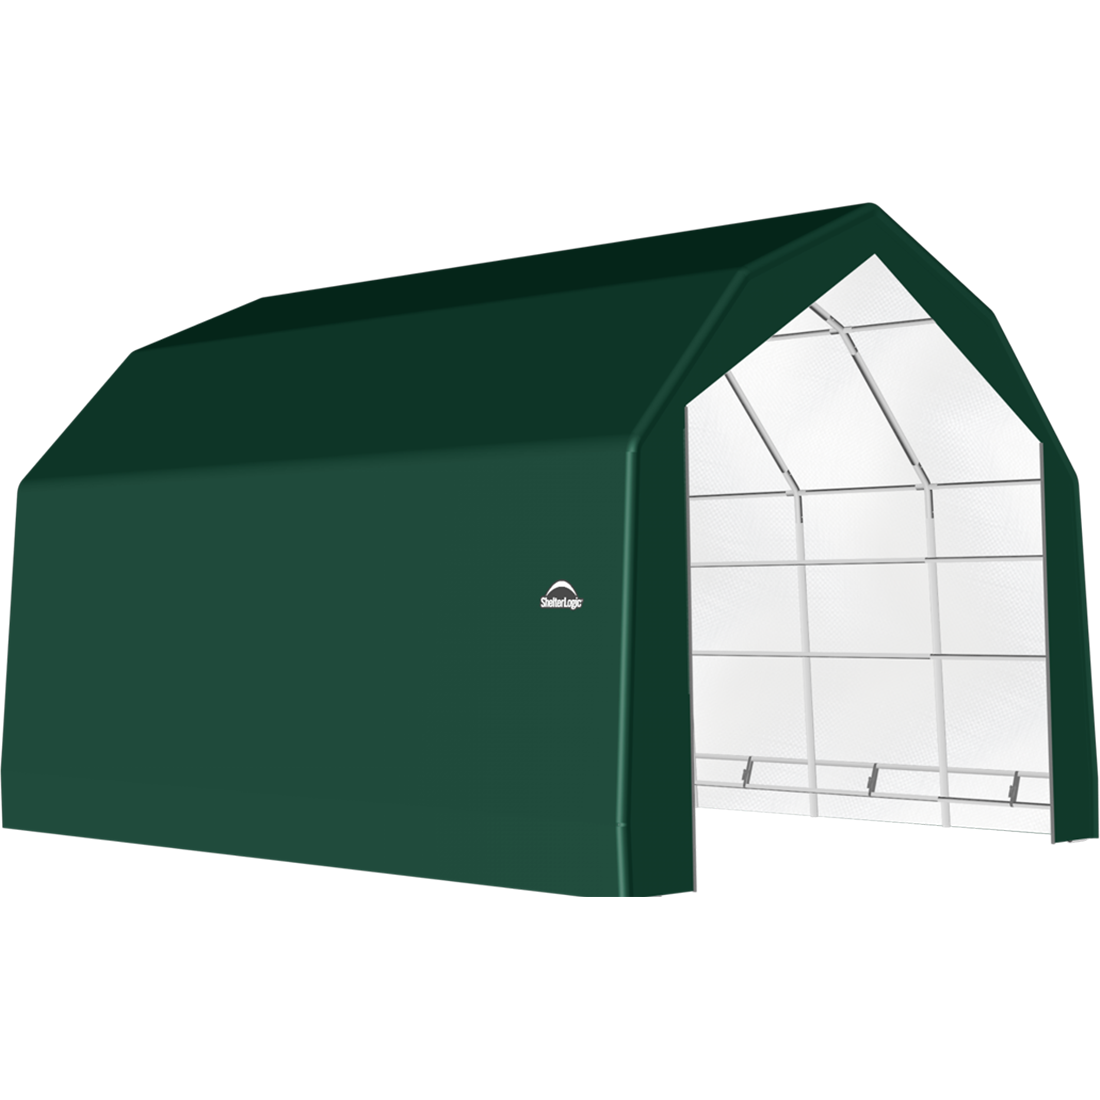 SP Barn 20X24X15 Green 14 oz PE Shelter